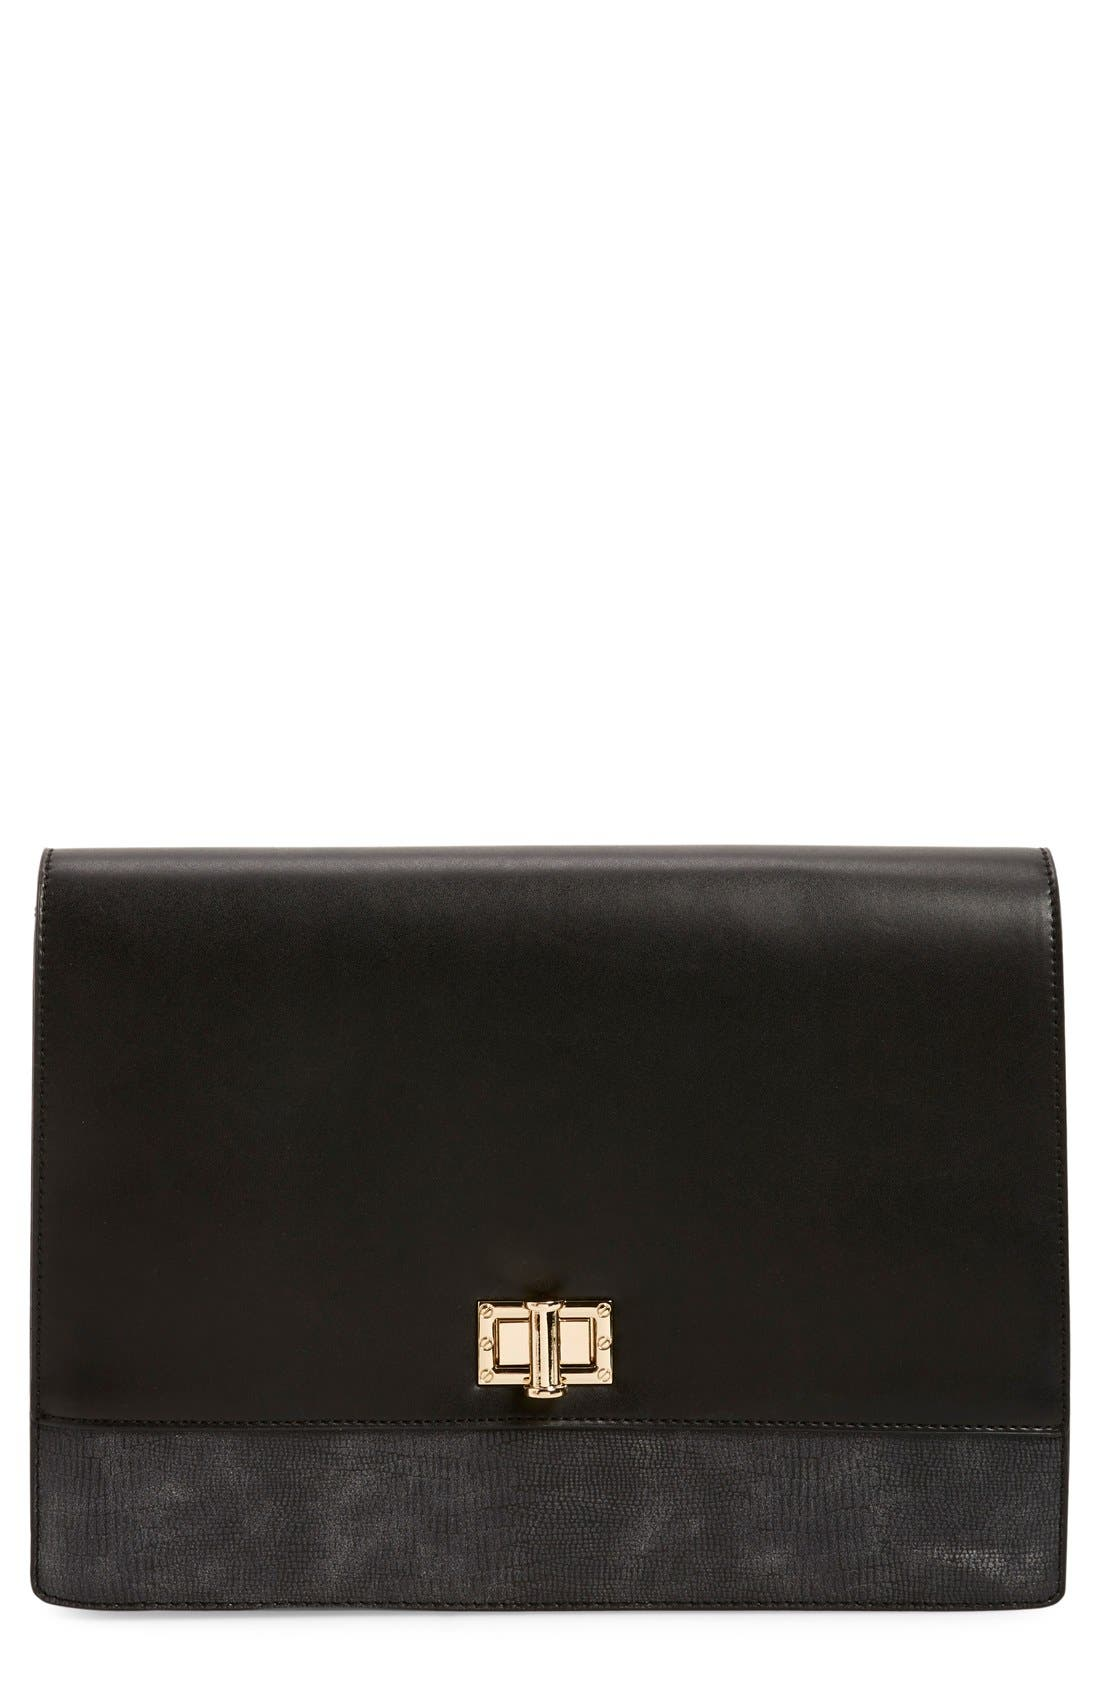 Alternate Image 1 Selected - Sole Society 'Exotic' Boxy Flap Clutch